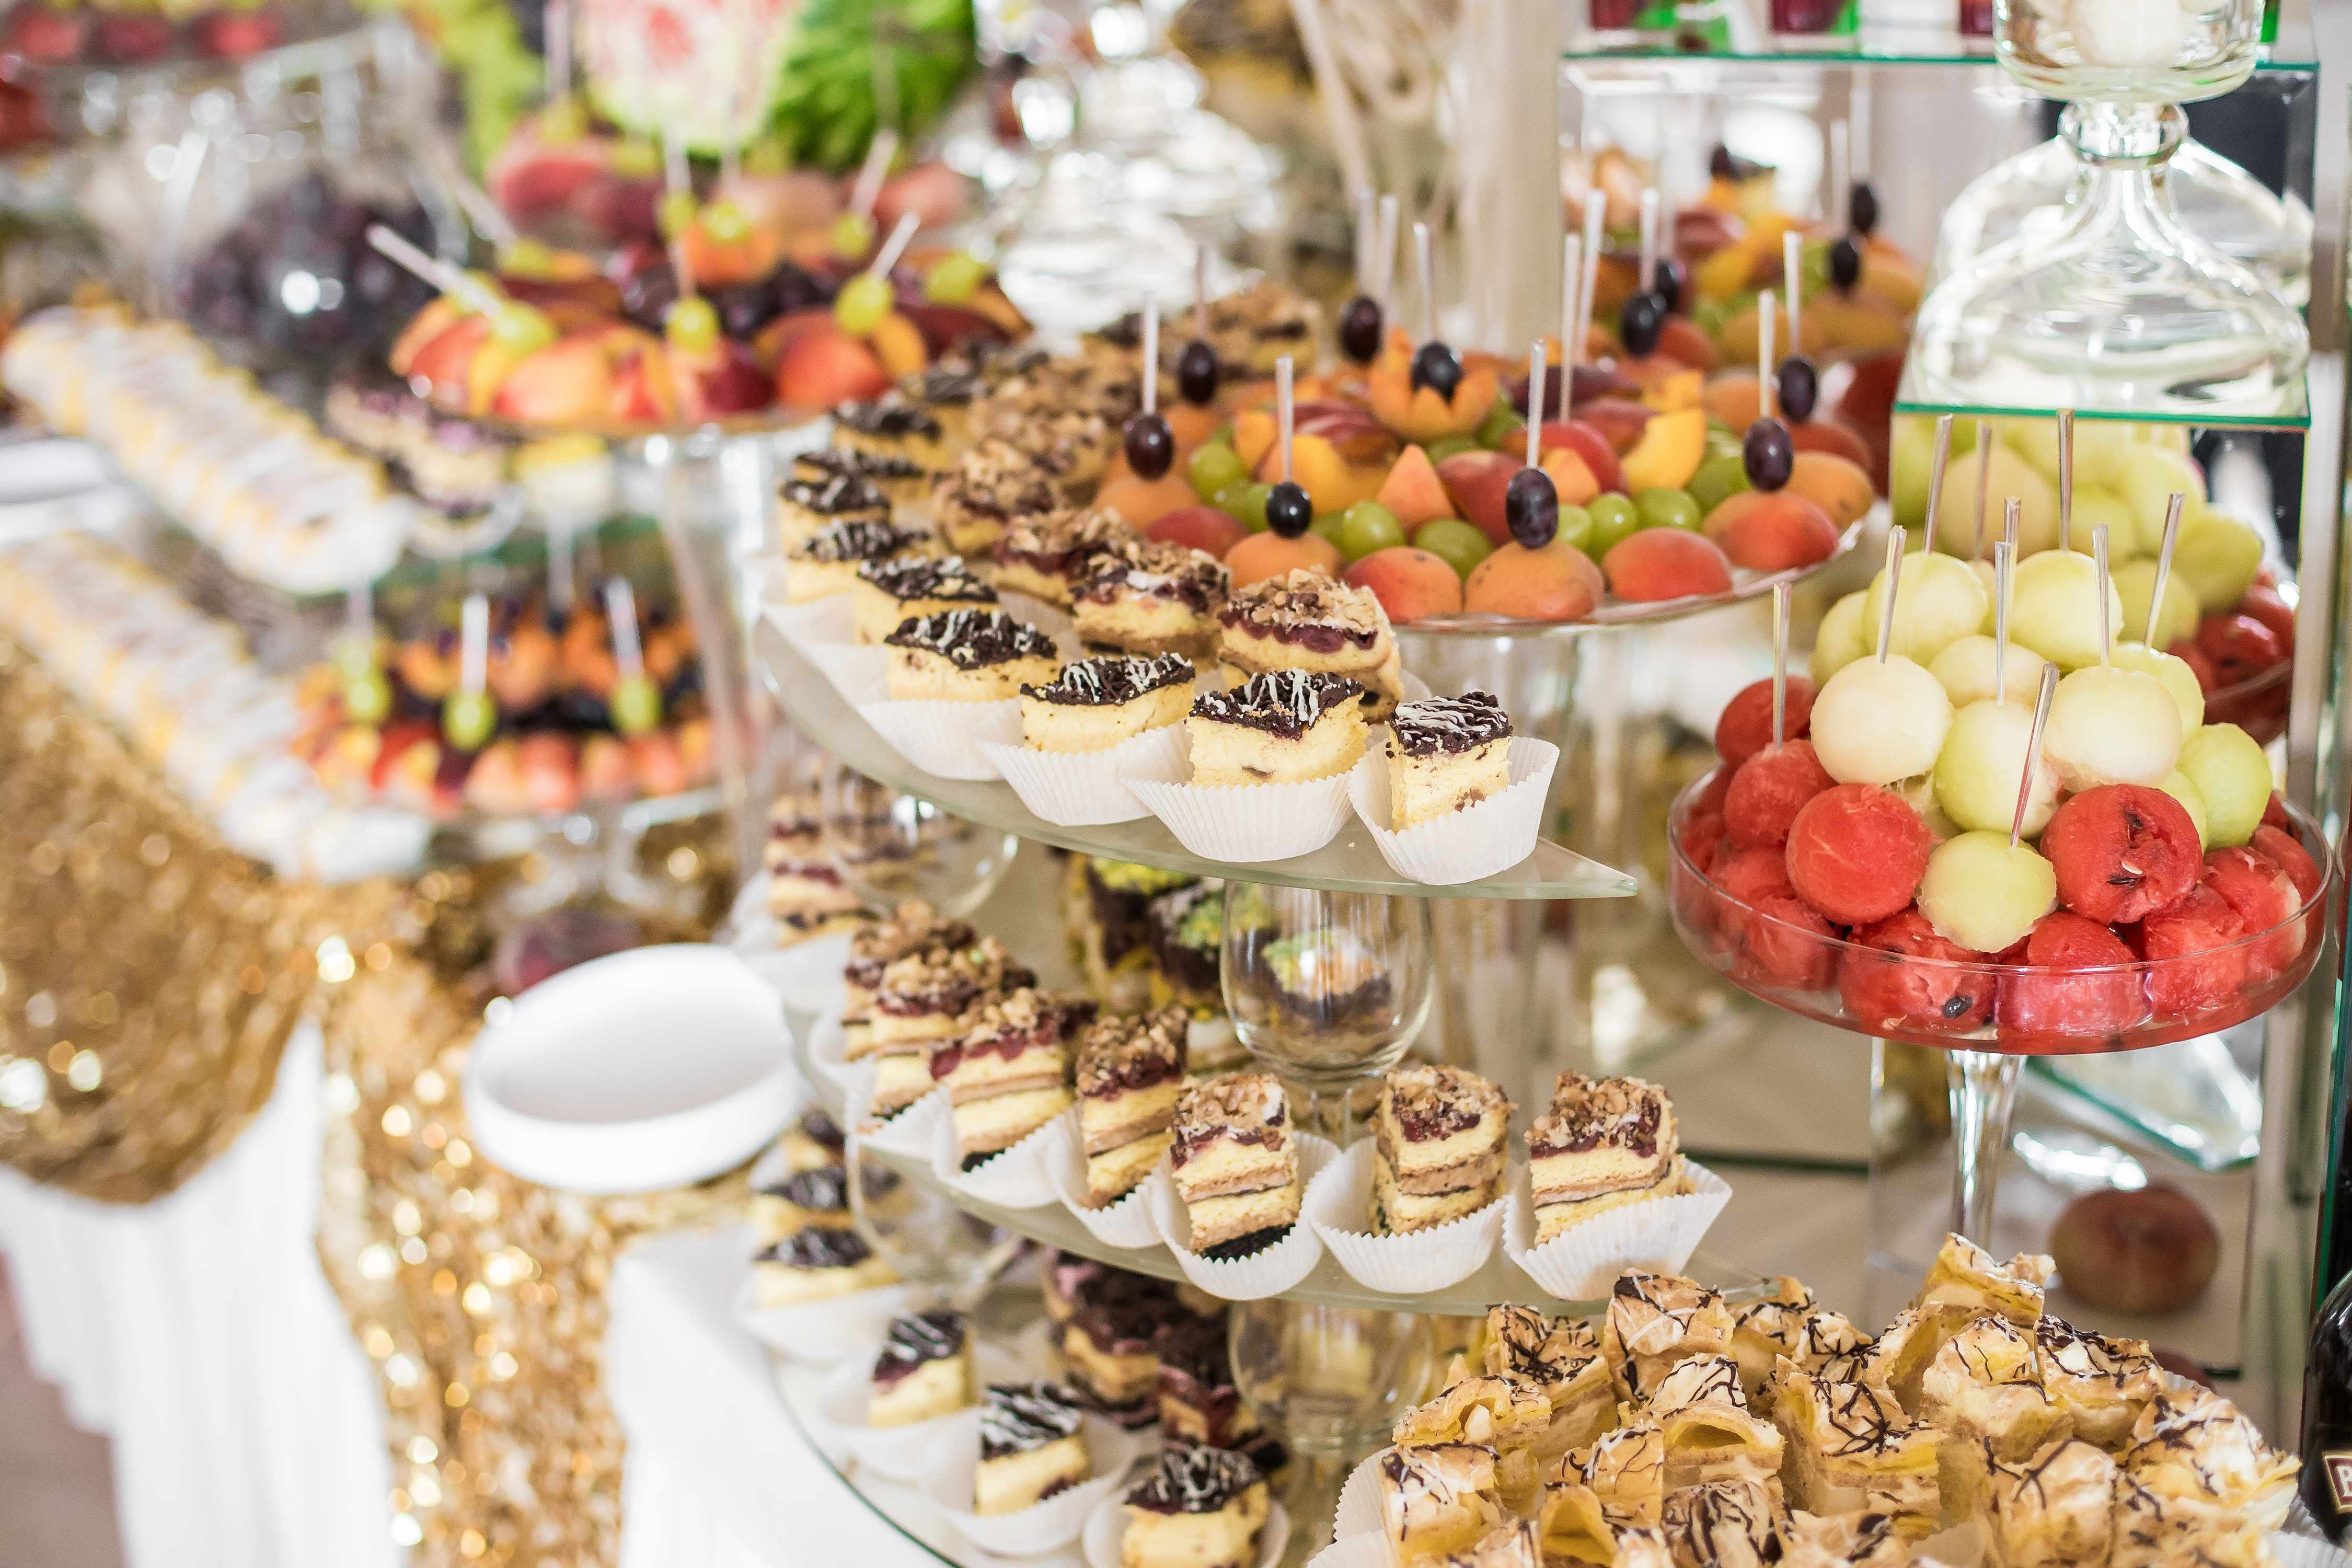 food table at a reception filled with fruits and pastries